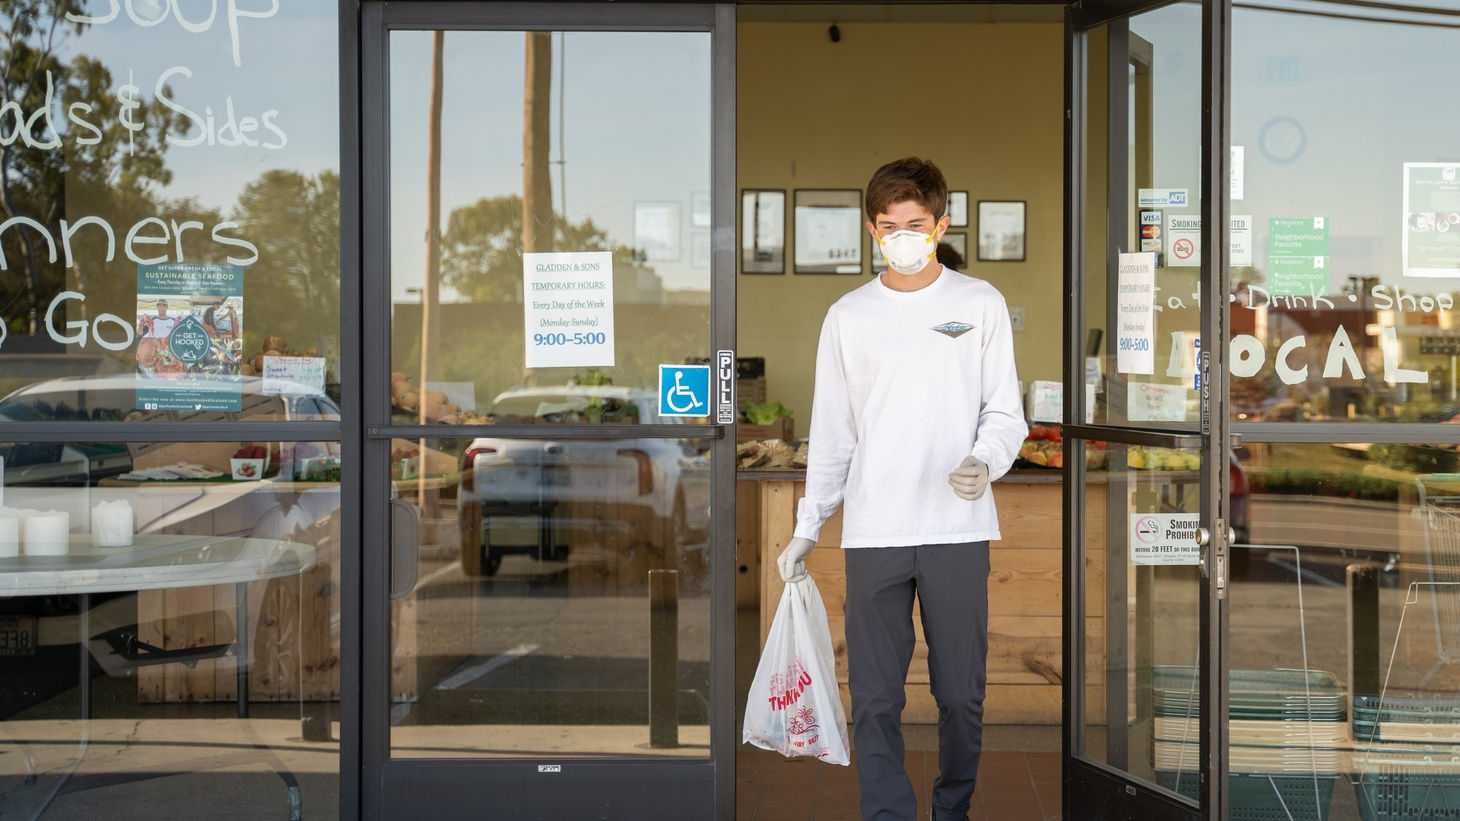 Volunteers for Zoomers to Boomers wear masks and gloves while shopping and delivery food.